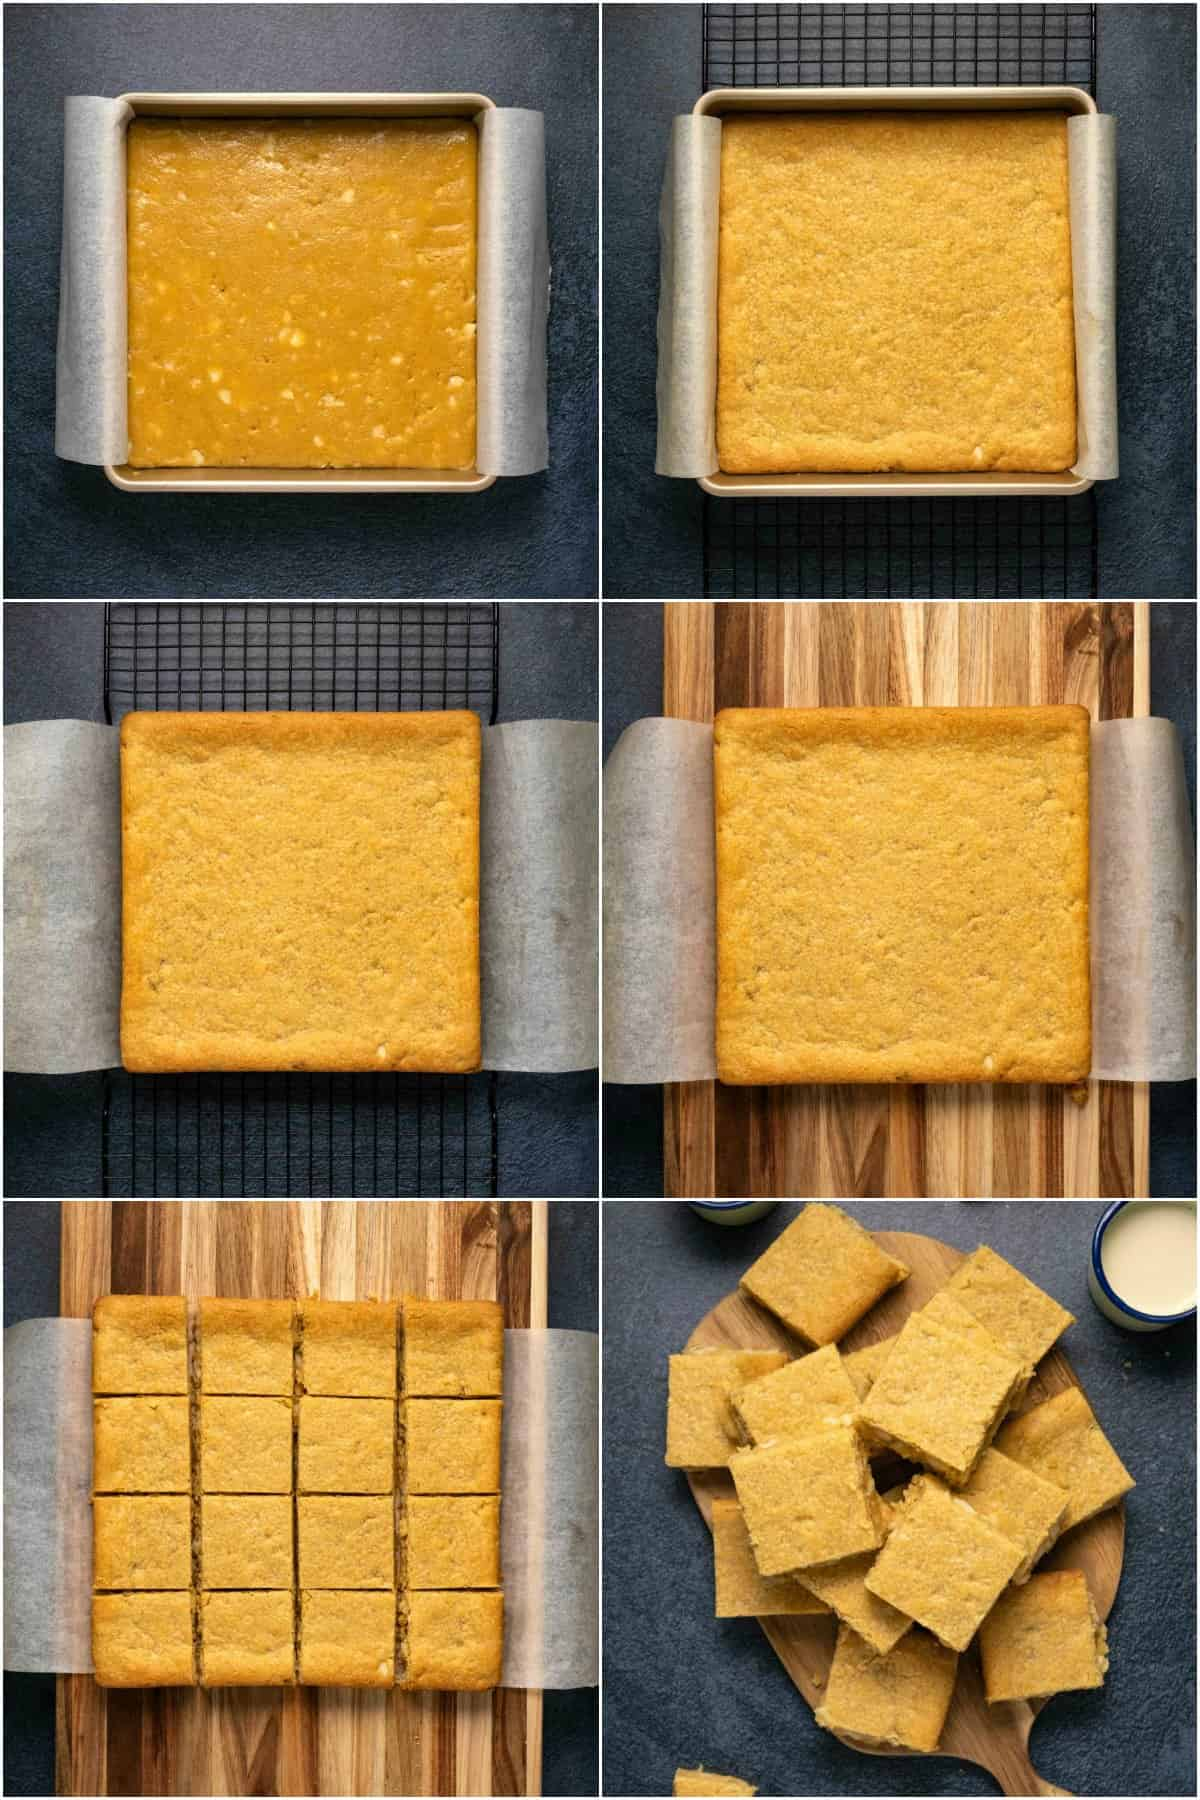 Step by step process photo collage of making vegan blondies.